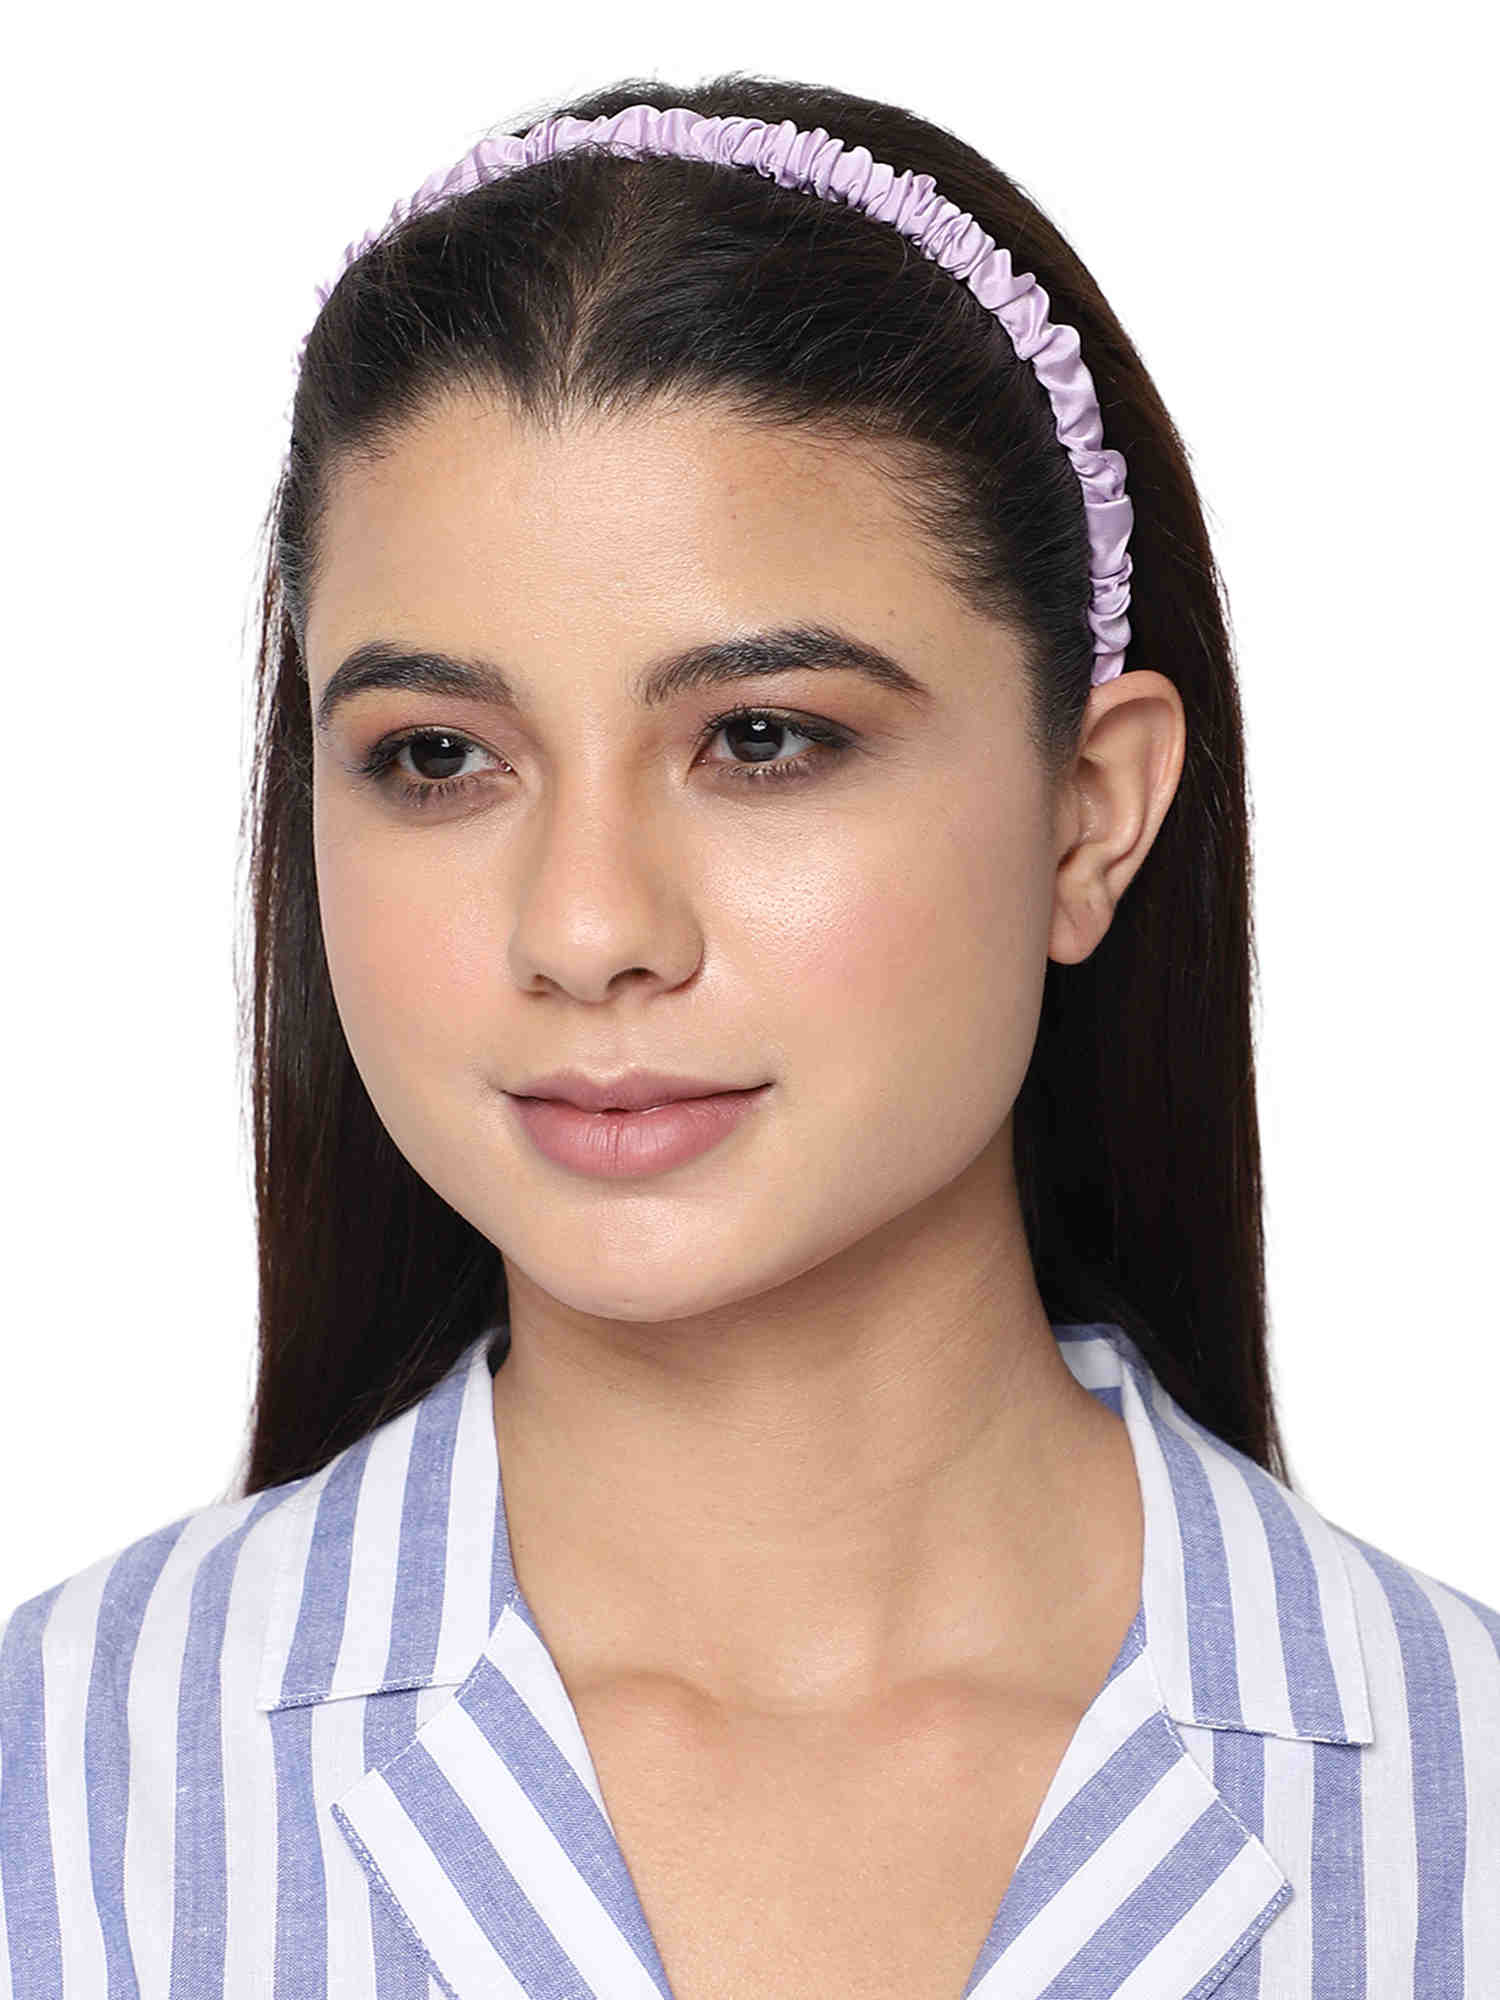 Bellofox Sleek Crinkled Headband Hair Accessories